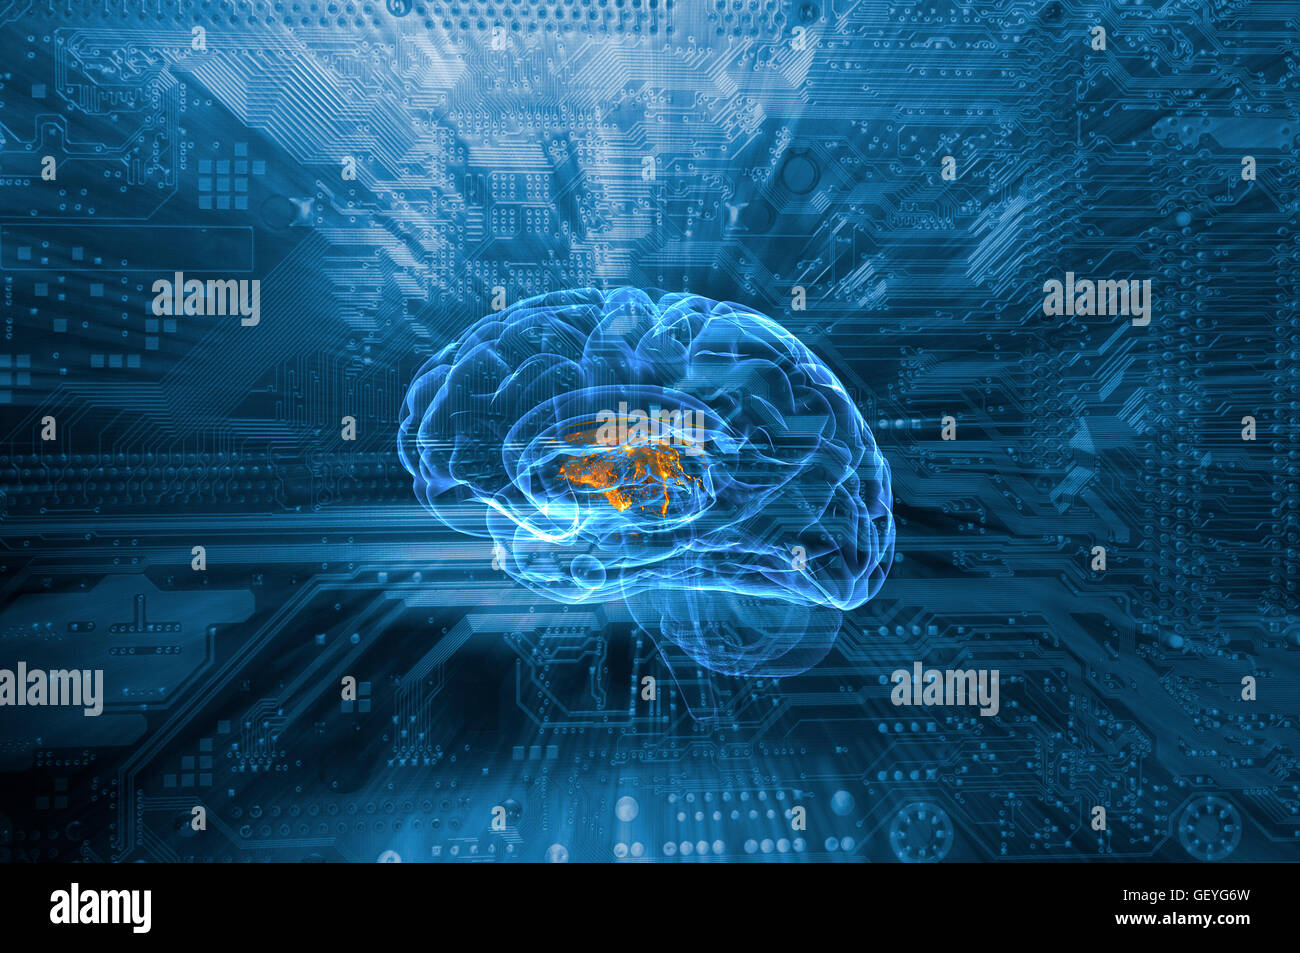 artificial intelligence and communication - Stock Image